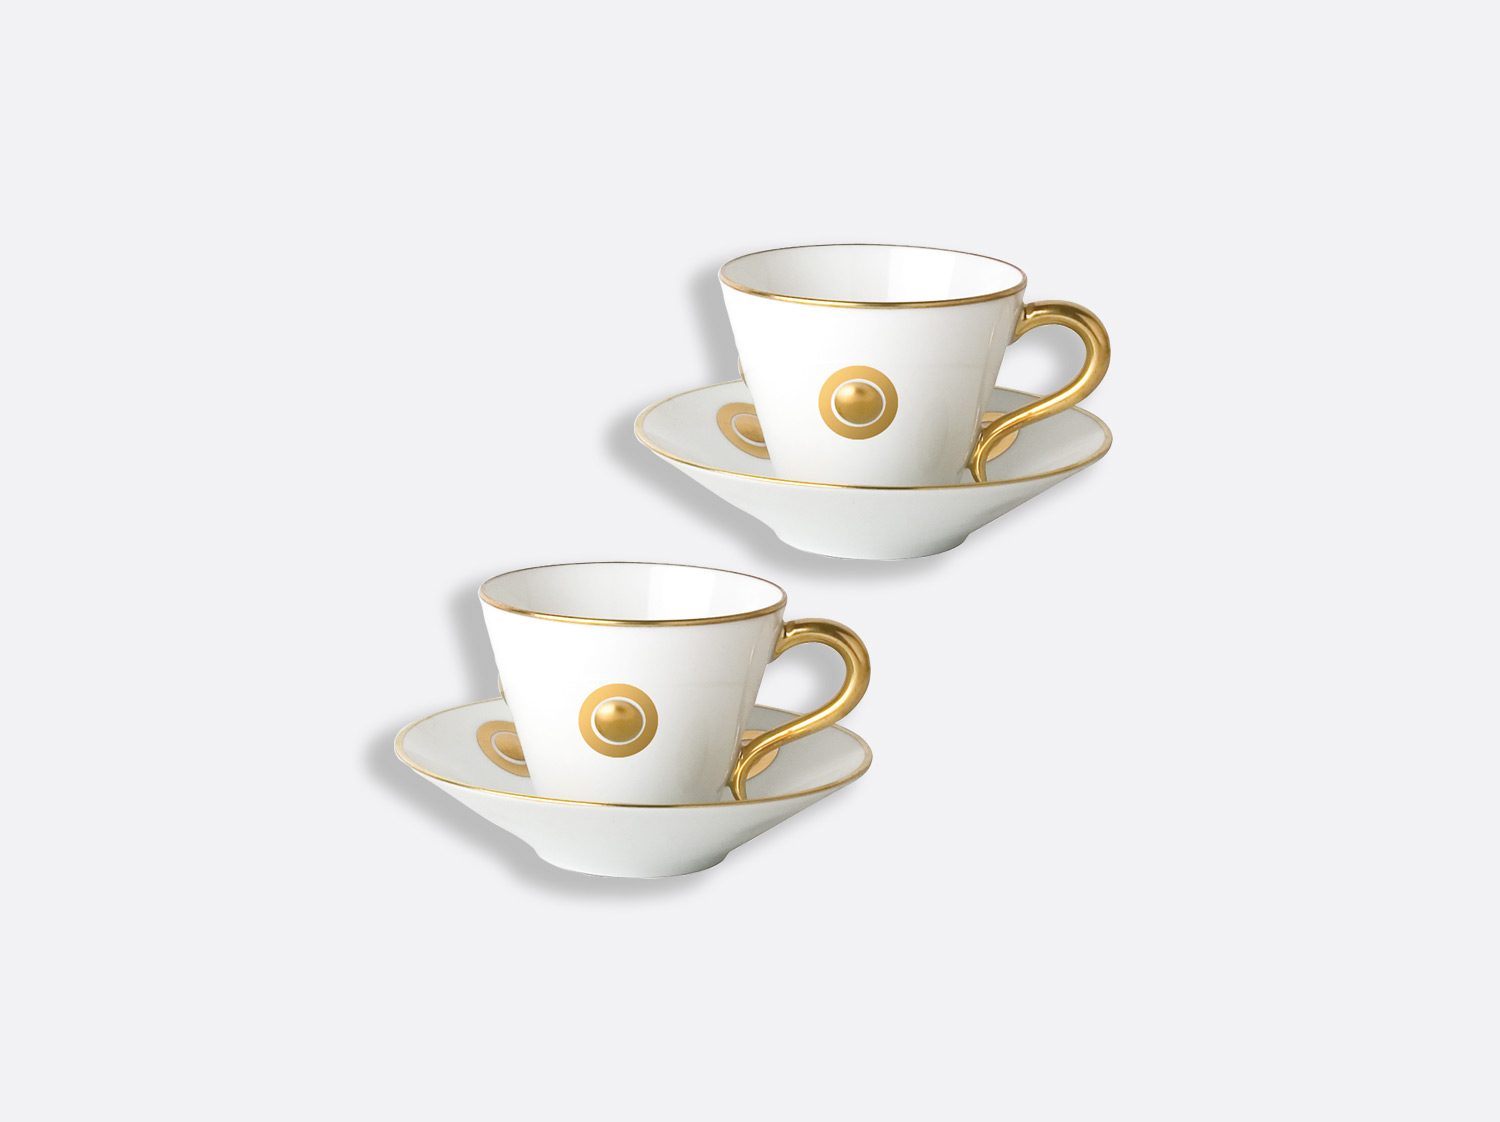 China Espresso cup and saucer 4.4 oz - Set of 2 of the collection Ithaque or | Bernardaud